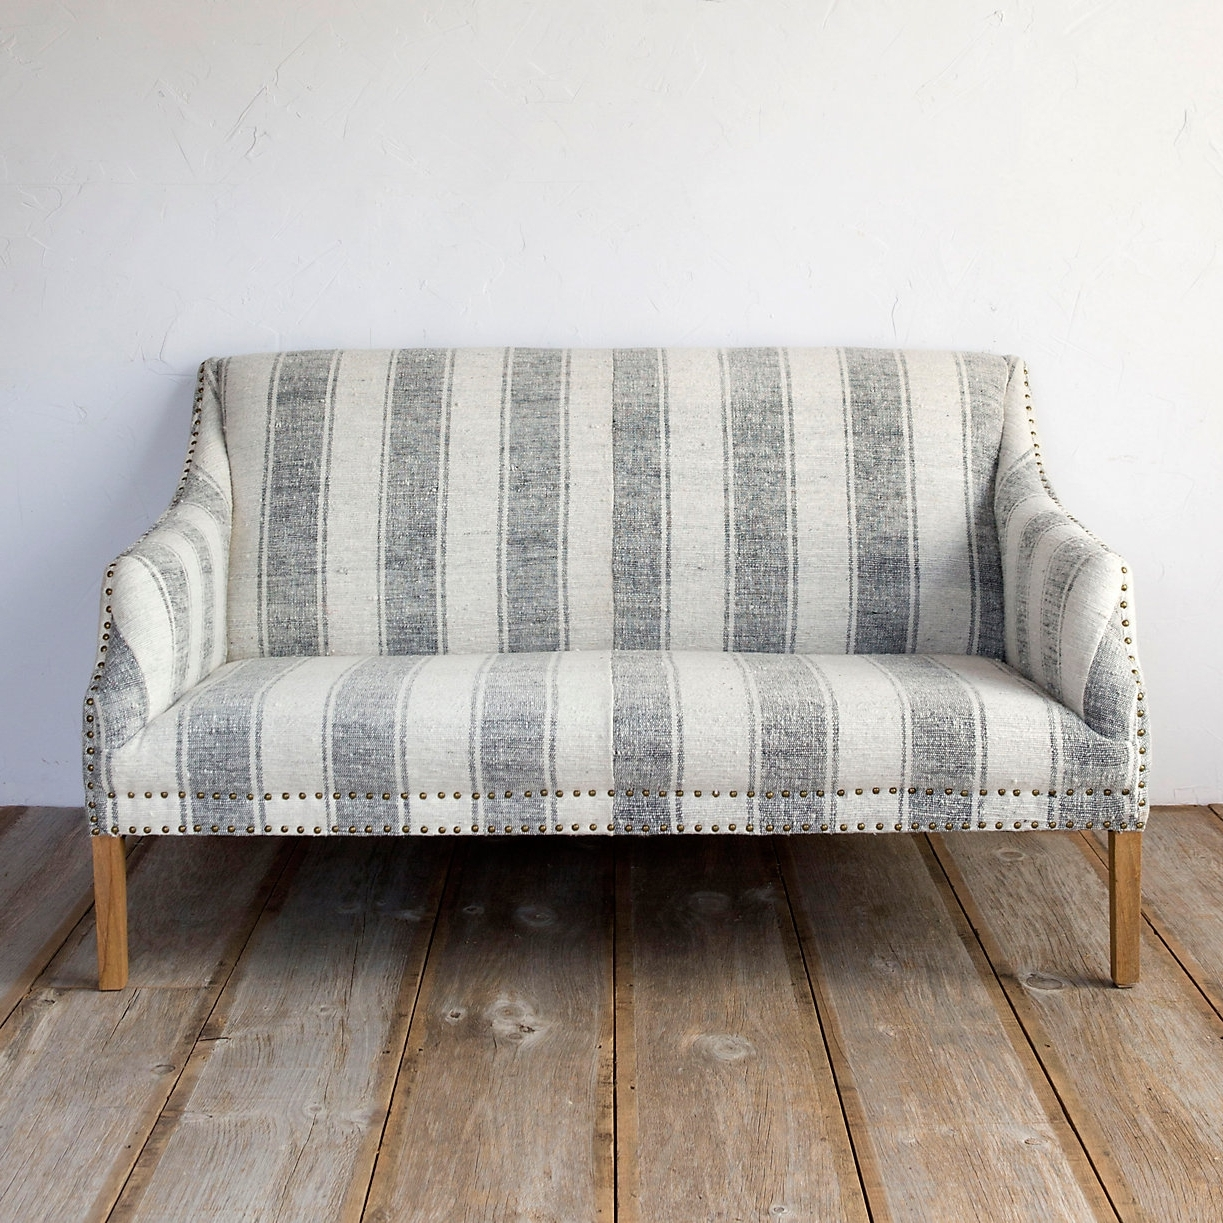 Shabby Chic Sofas Within Well Known Shabby Chic Decor For Sale Shabby Chic Used Furniture Shabby Chic (View 20 of 20)